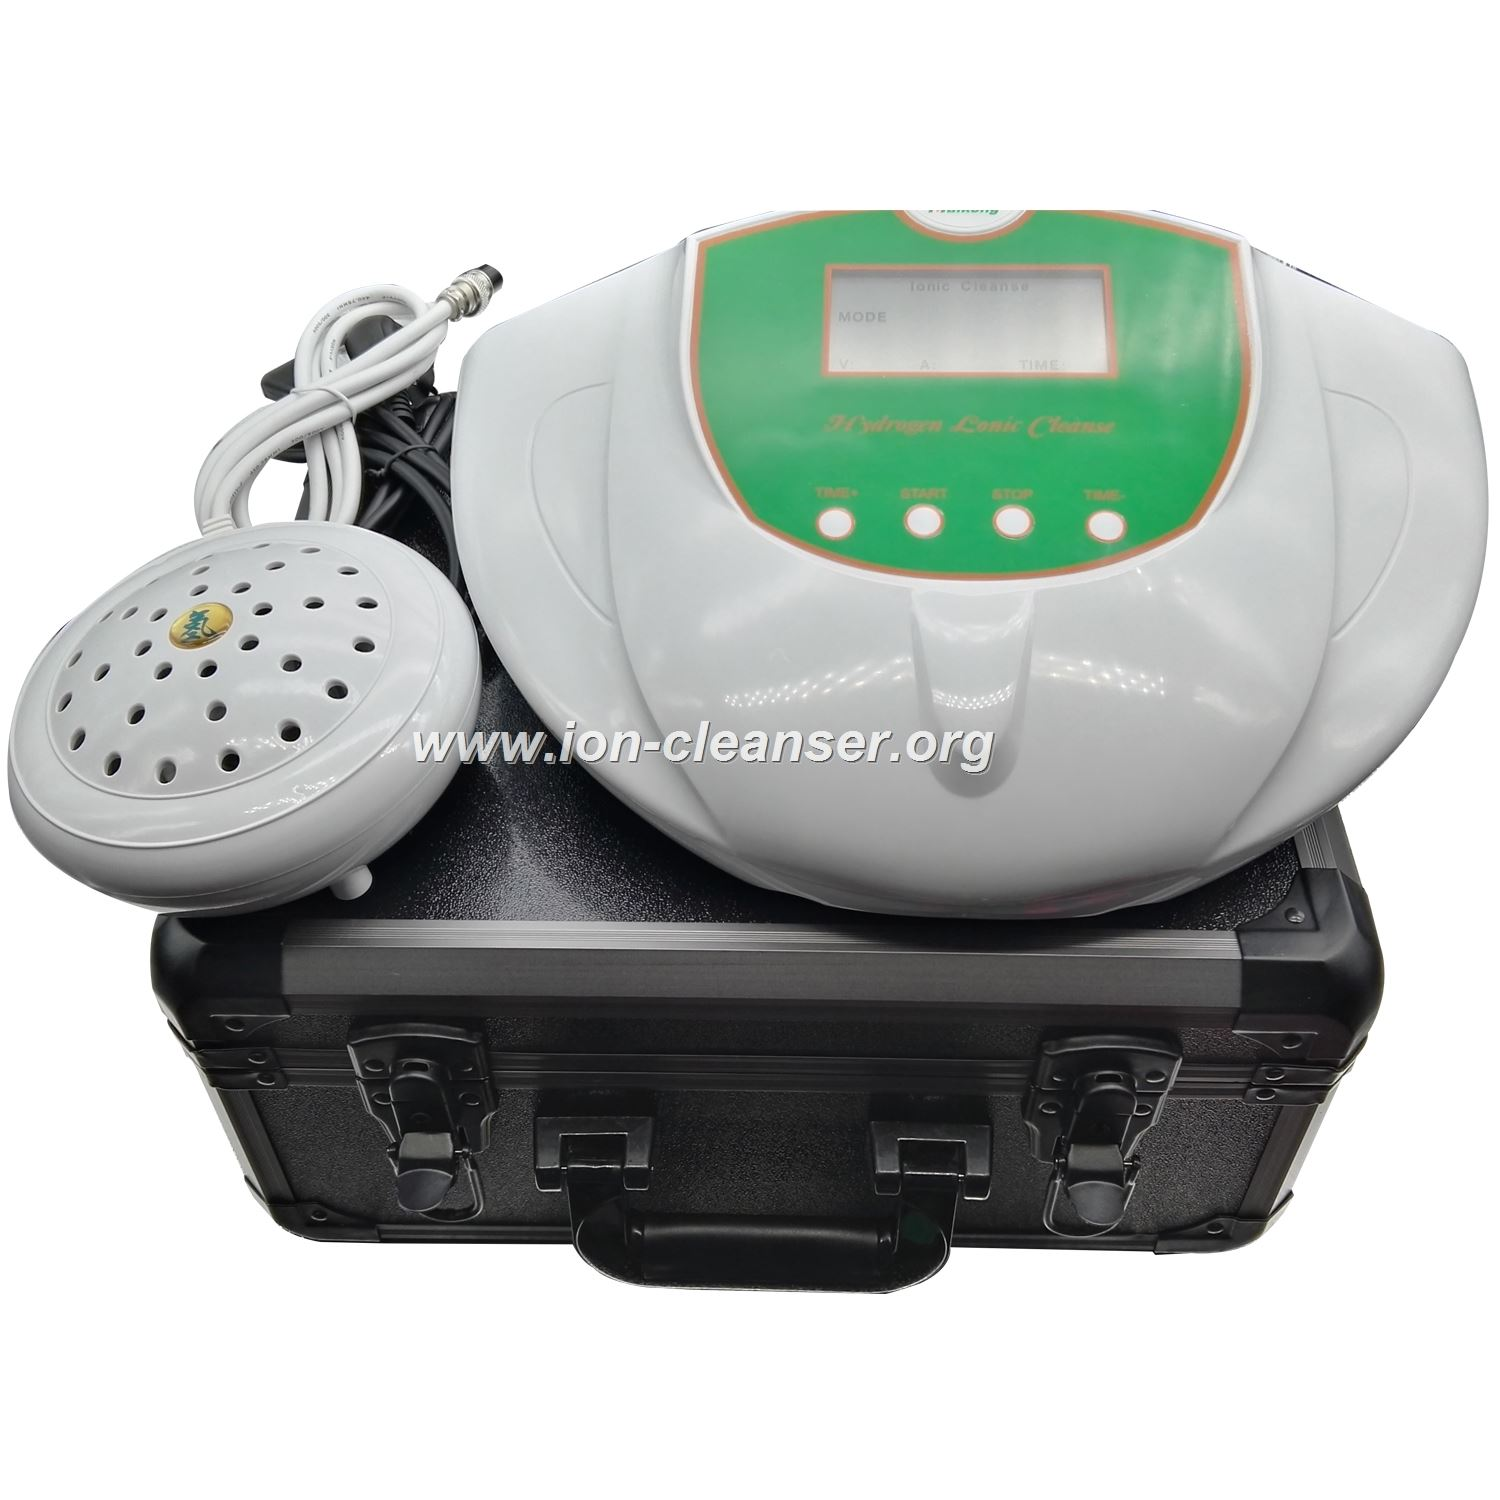 Where ionic detox machine for sale